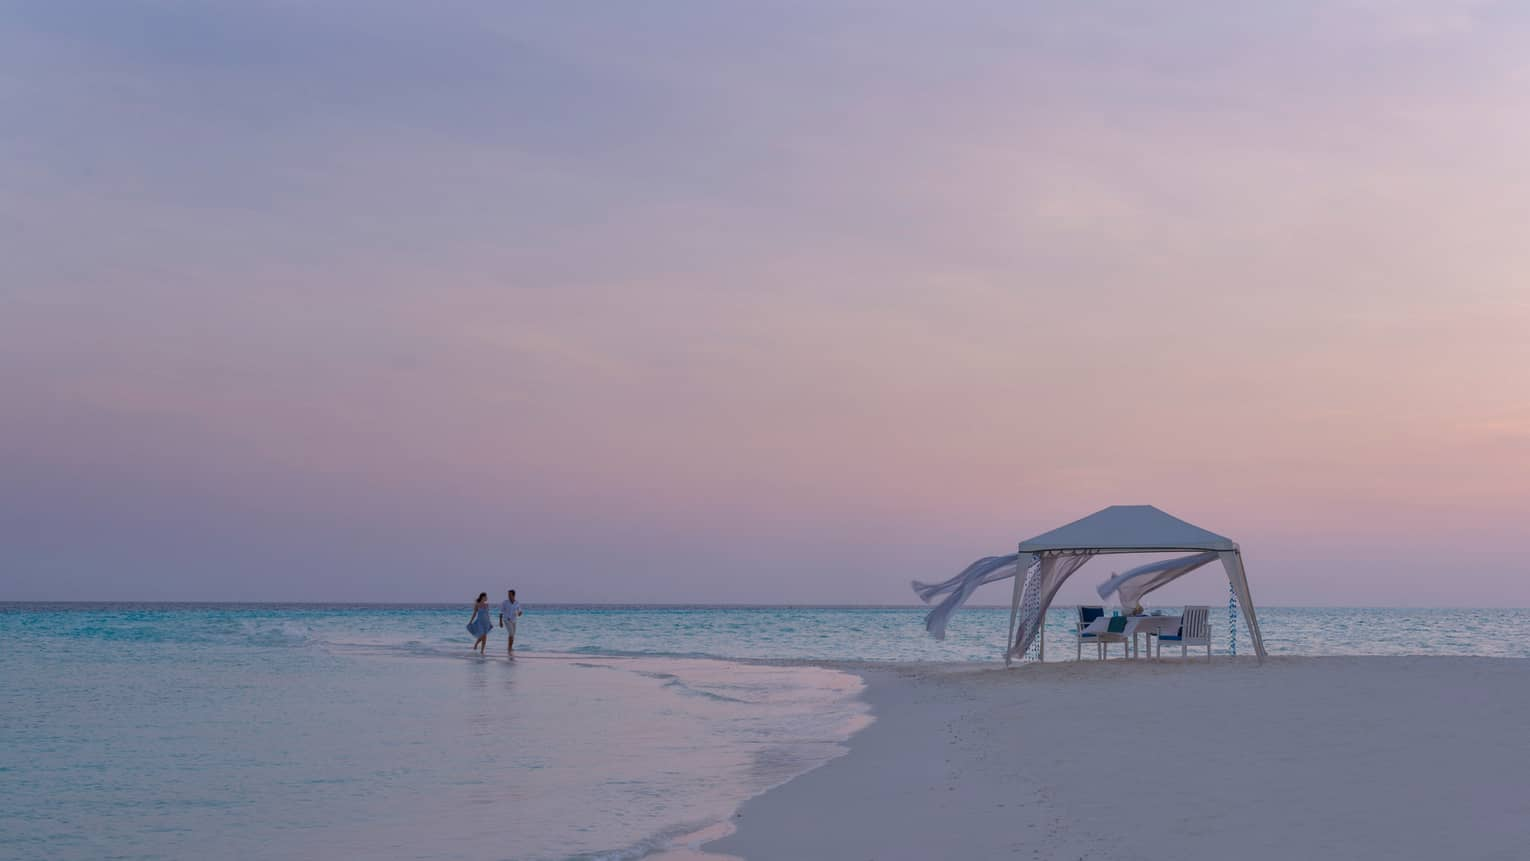 Couple walks across tide, sand beach to cabana with flowing white curtains, pink sunset